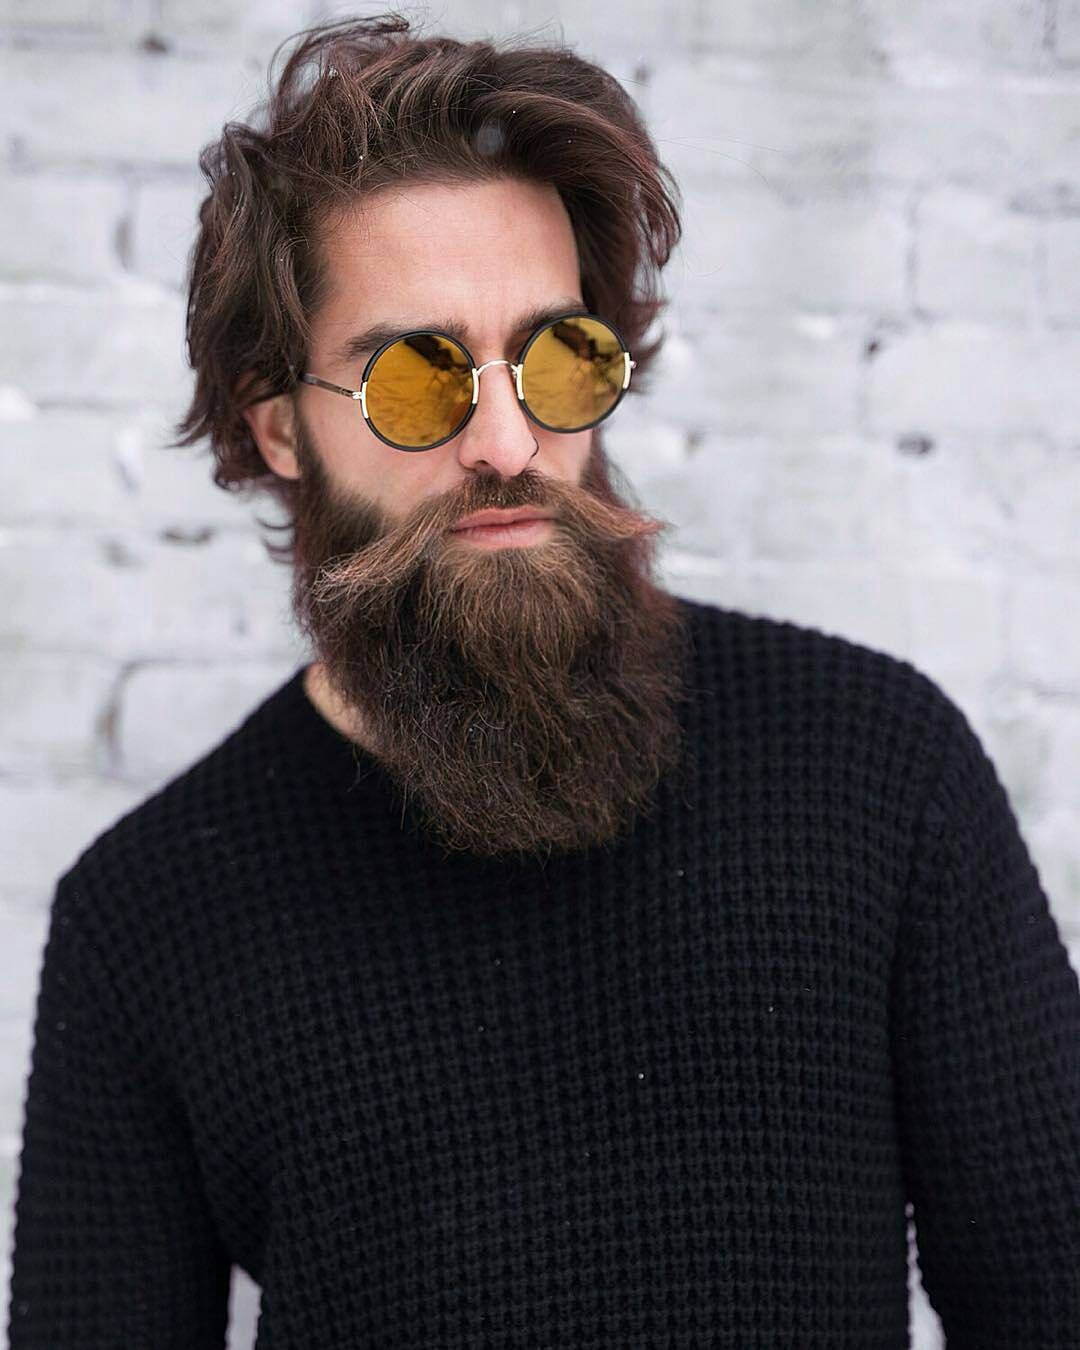 long beard hair styles 25 ultimate beard styles be with it 4184 | 081f105644cabc49186d0d056d9f707c